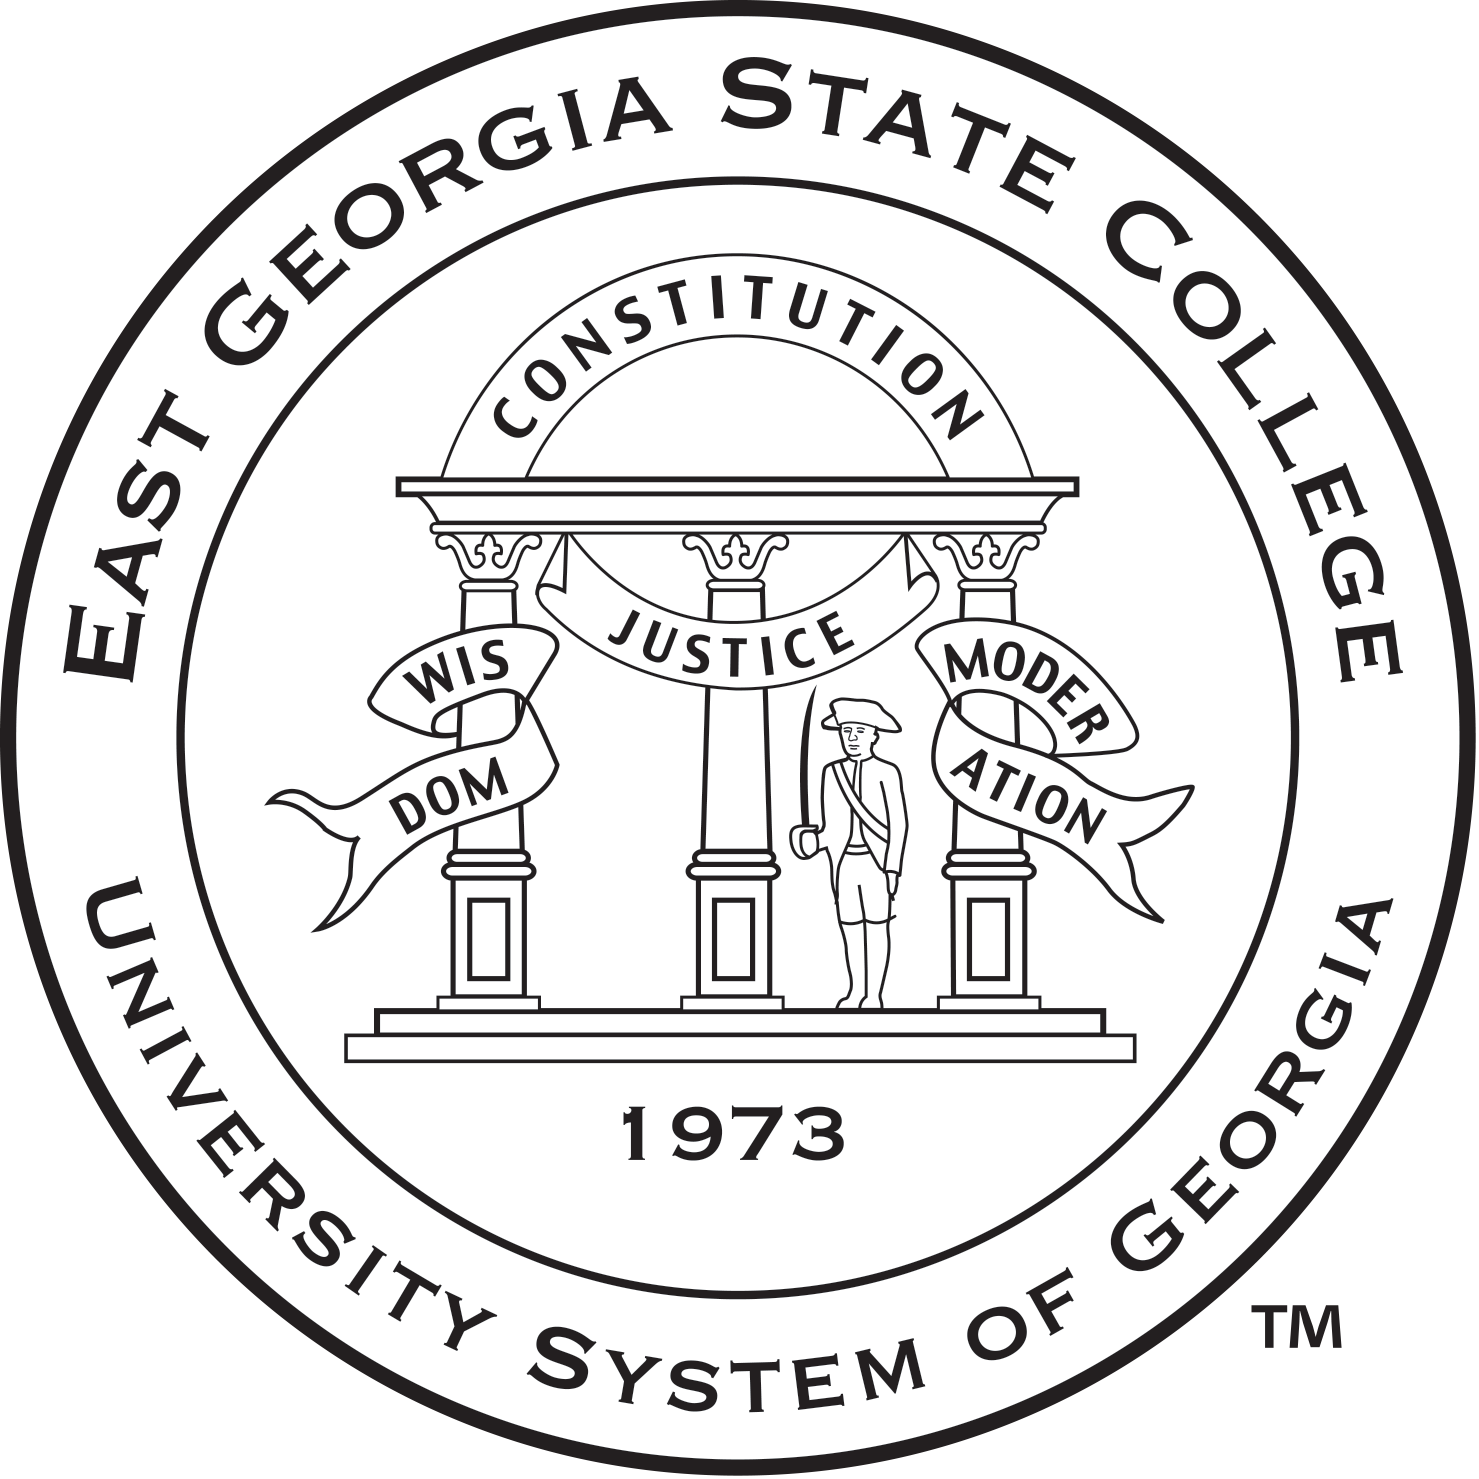 State of georgia seal png image. Egsc brand resources east